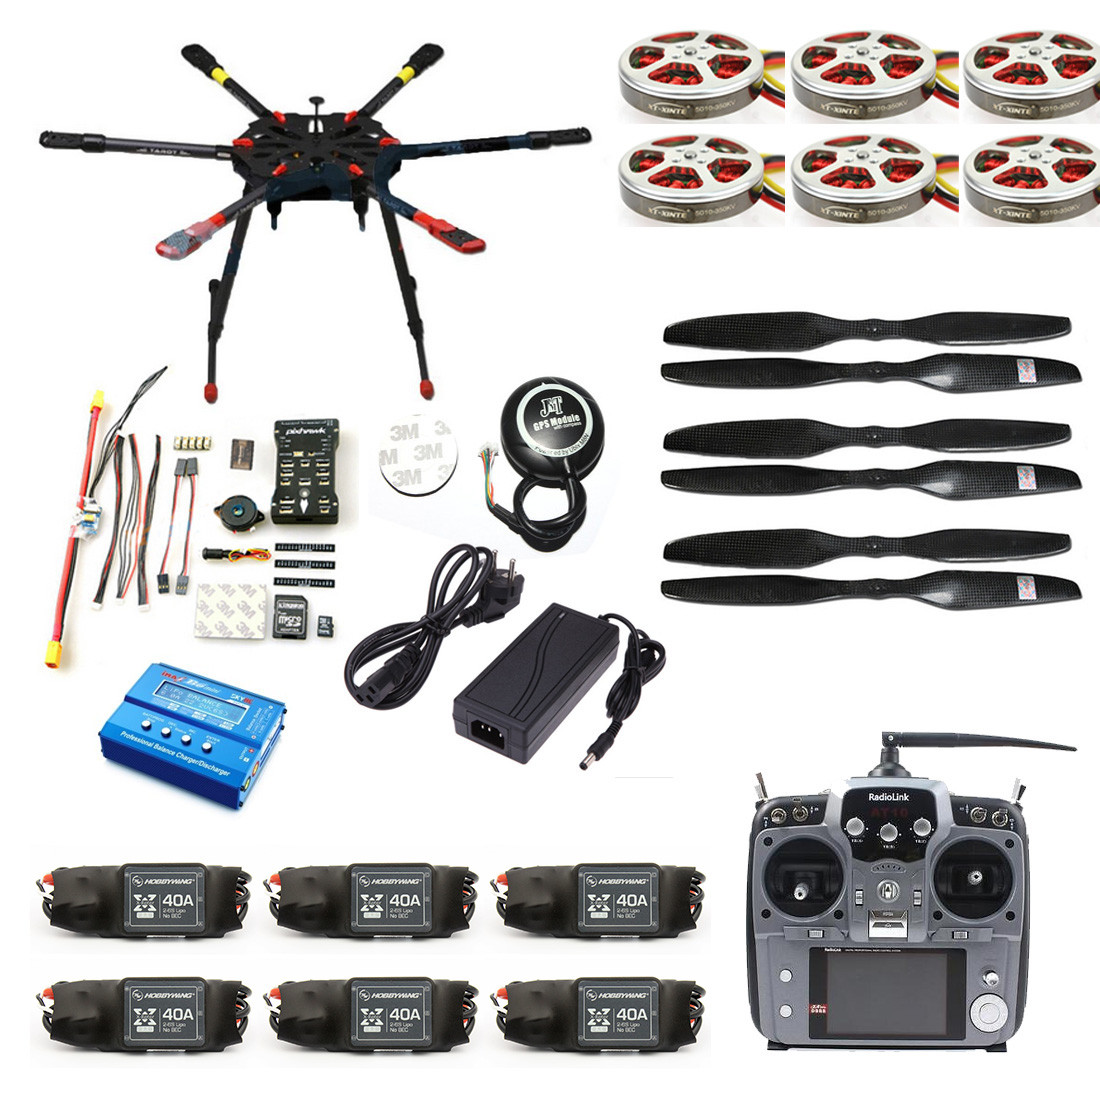 JMT Pro 2.4G 10CH 960mm RC Hexacopter Drone Tarot X6 Folding Retractable PIX PX4 M8N GPS ARF/PNF DIY Unassembly Kit F11283-A/B